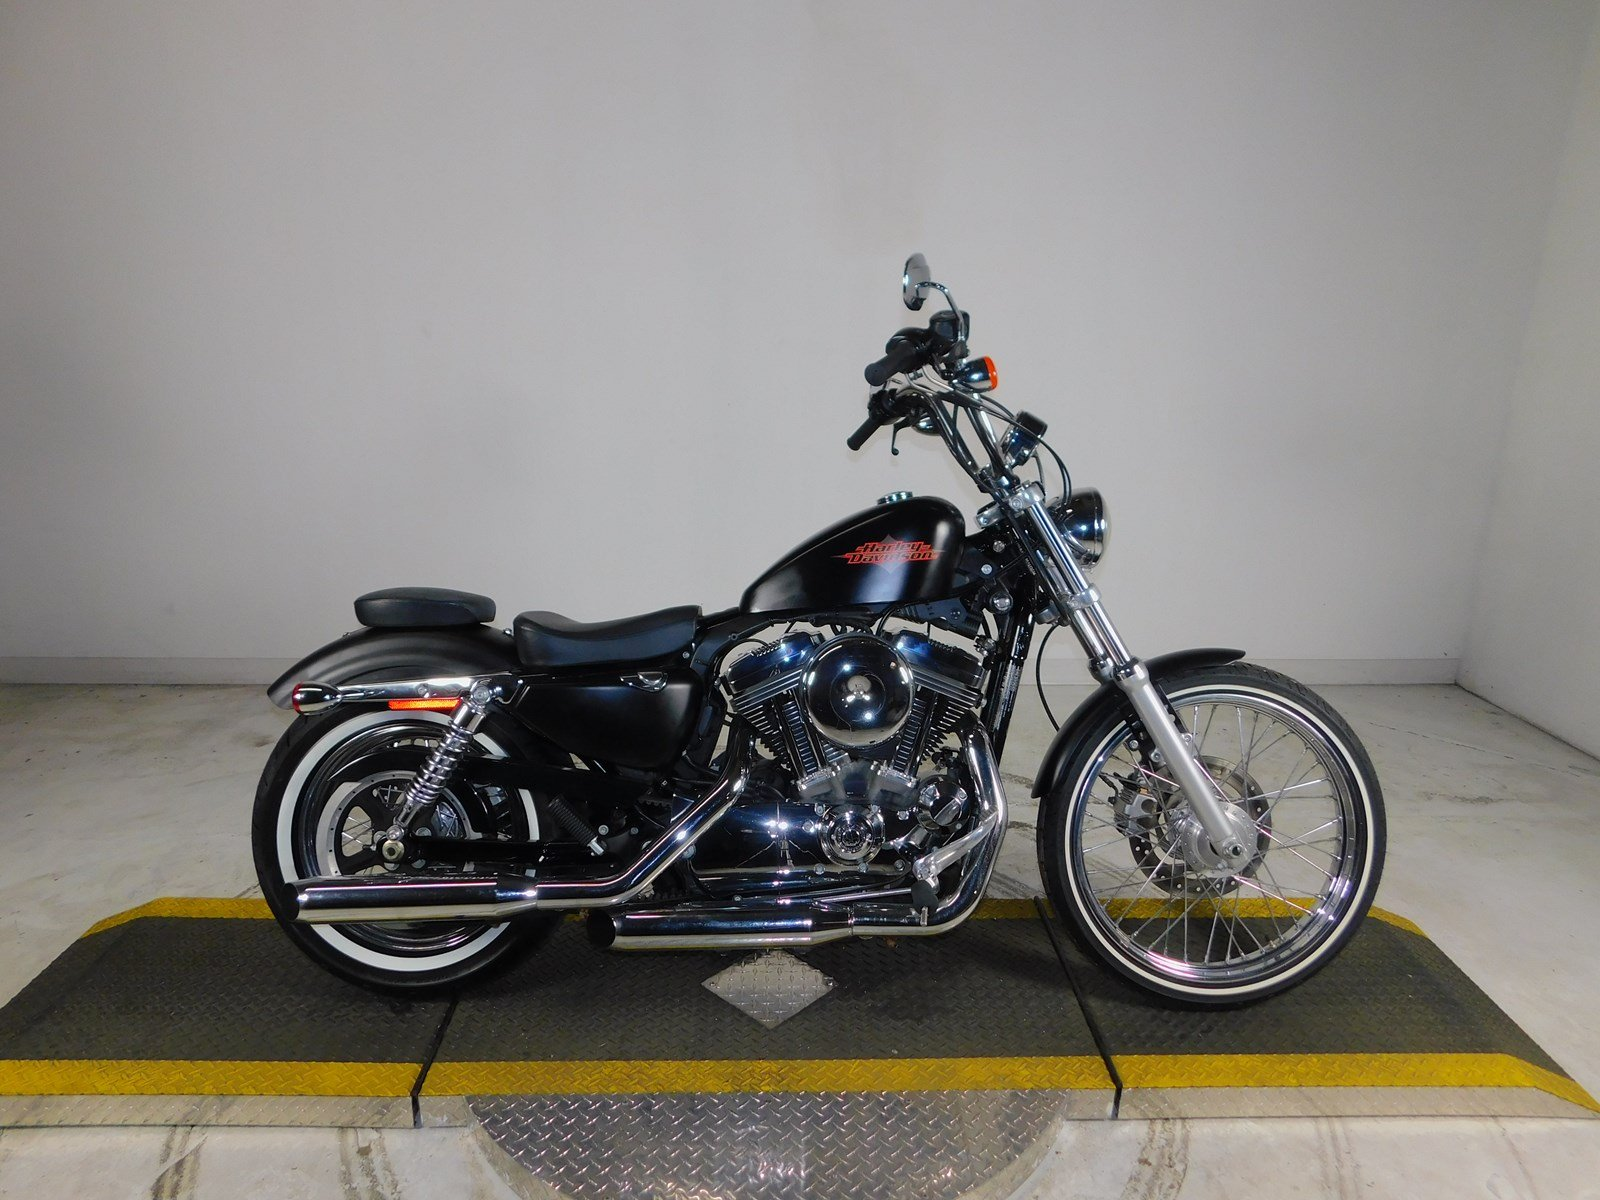 Pre-Owned 2013 Harley-Davidson Sportster Seventy-Two XL1200V